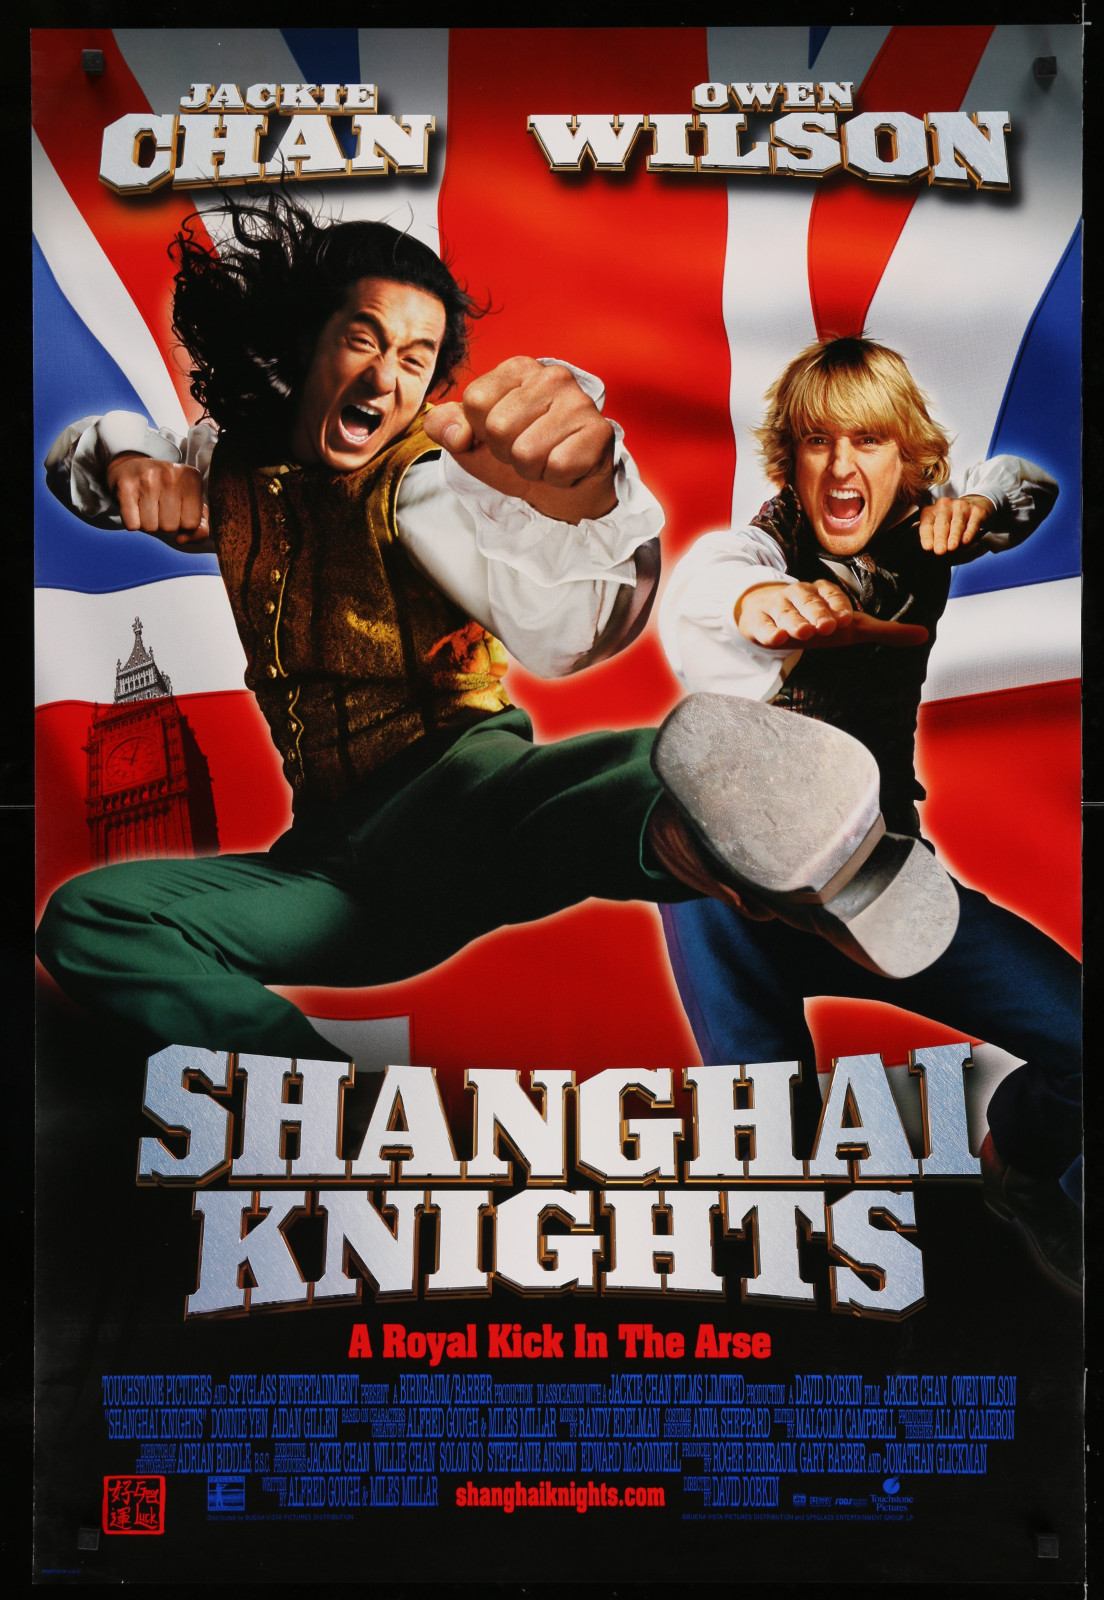 Shanghai Knights 2A366 A Part Of A Lot 29 Unfolded Double-Sided 27X40 One-Sheets '90S-00S Great Movie Images!